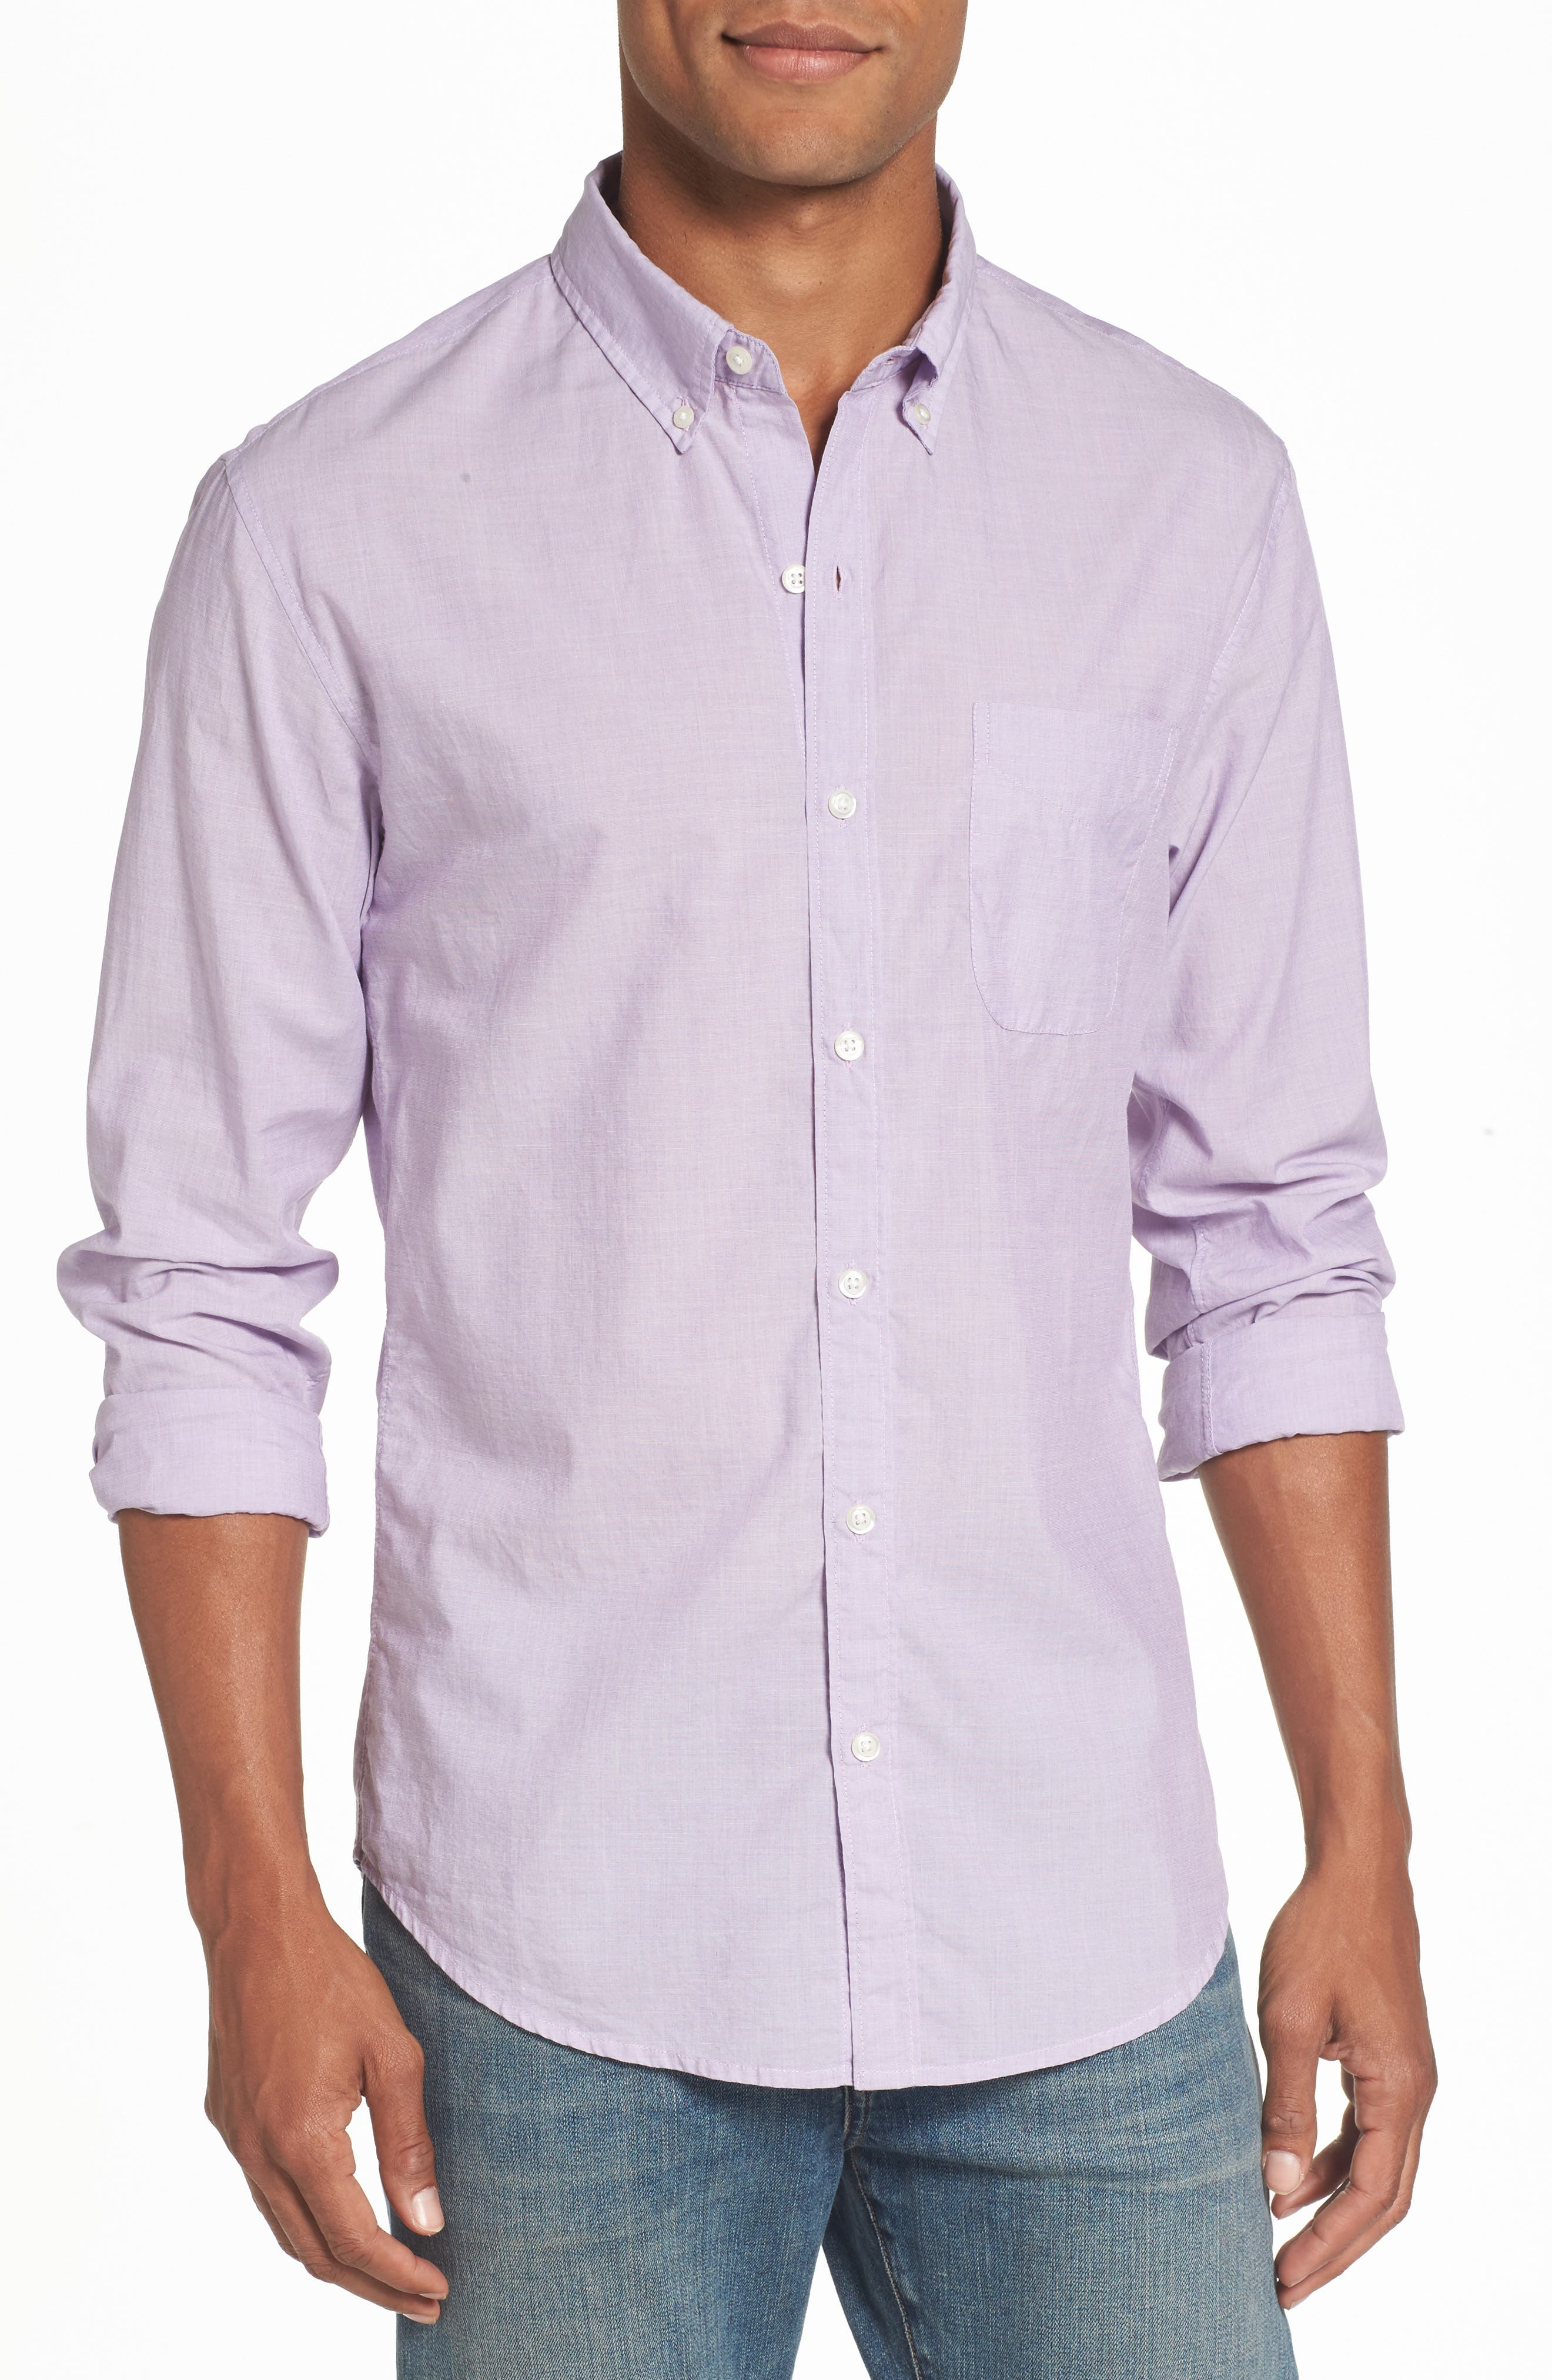 Alternate Image 1 Selected - Bonobos Slim Fit Summerweight Sport Shirt